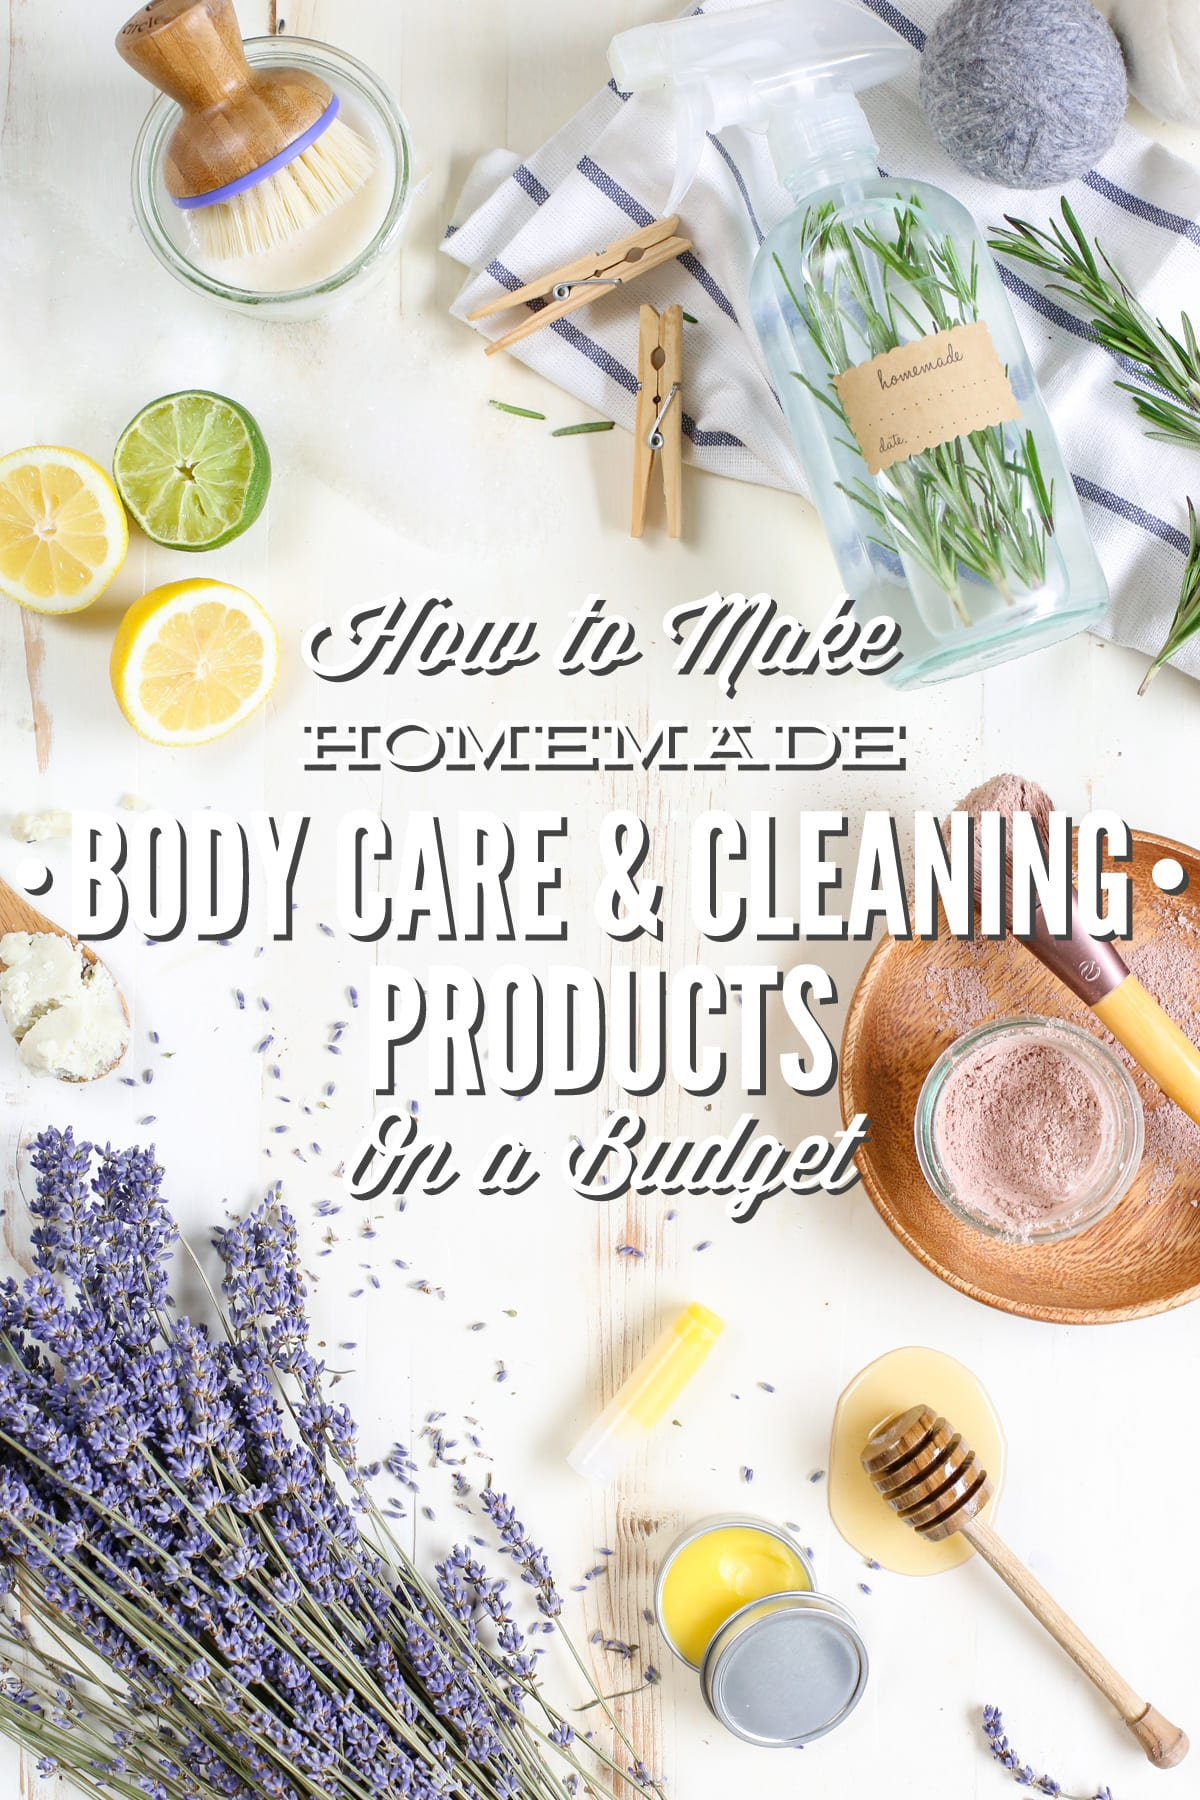 How to Make Homemade Body Care and Cleaning Products on a Budget